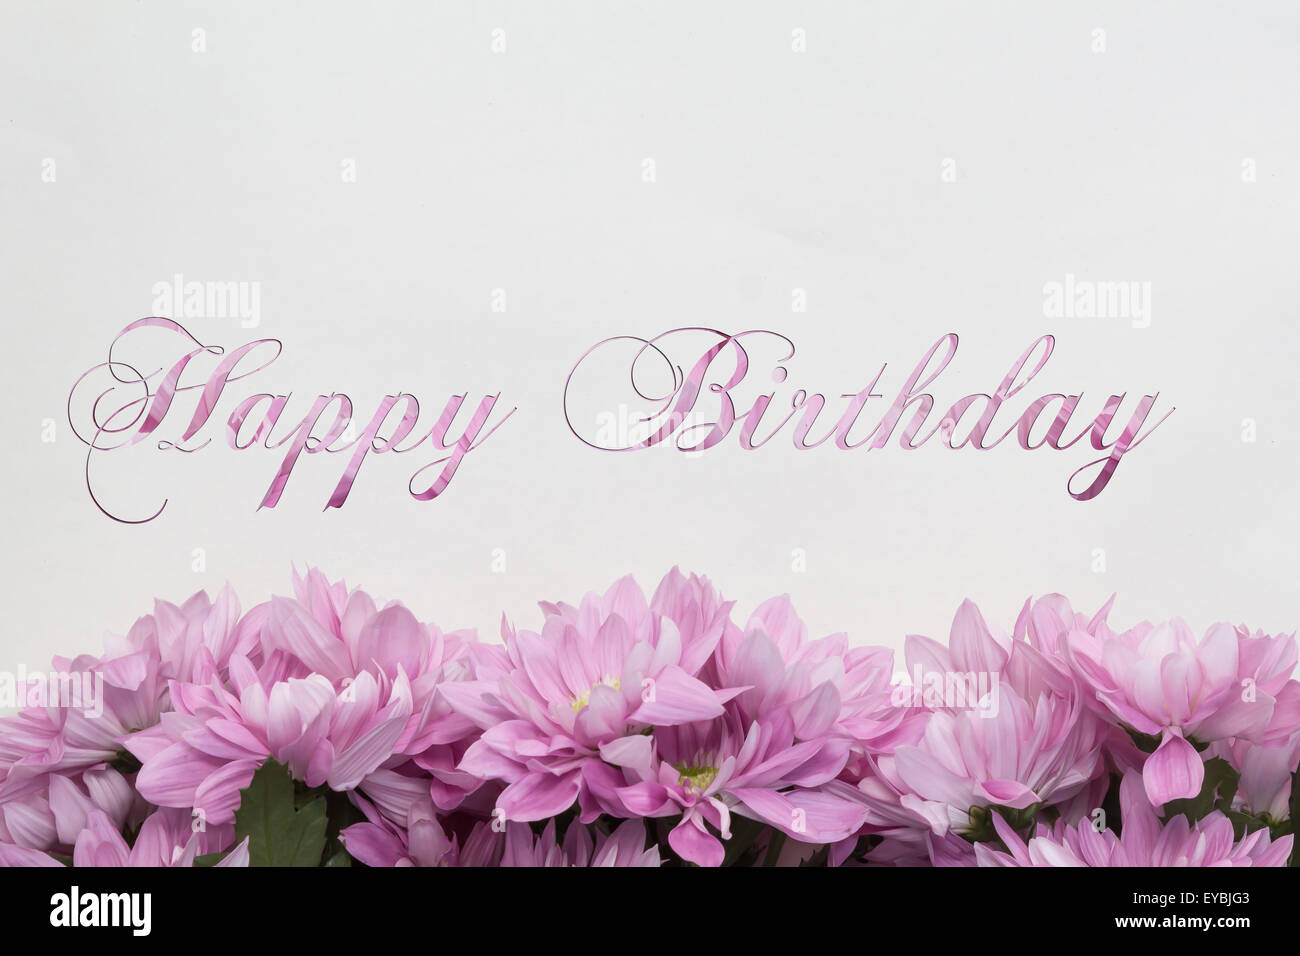 Happy Birthday Greeting Card With Flowers And Beautiful Handwriting